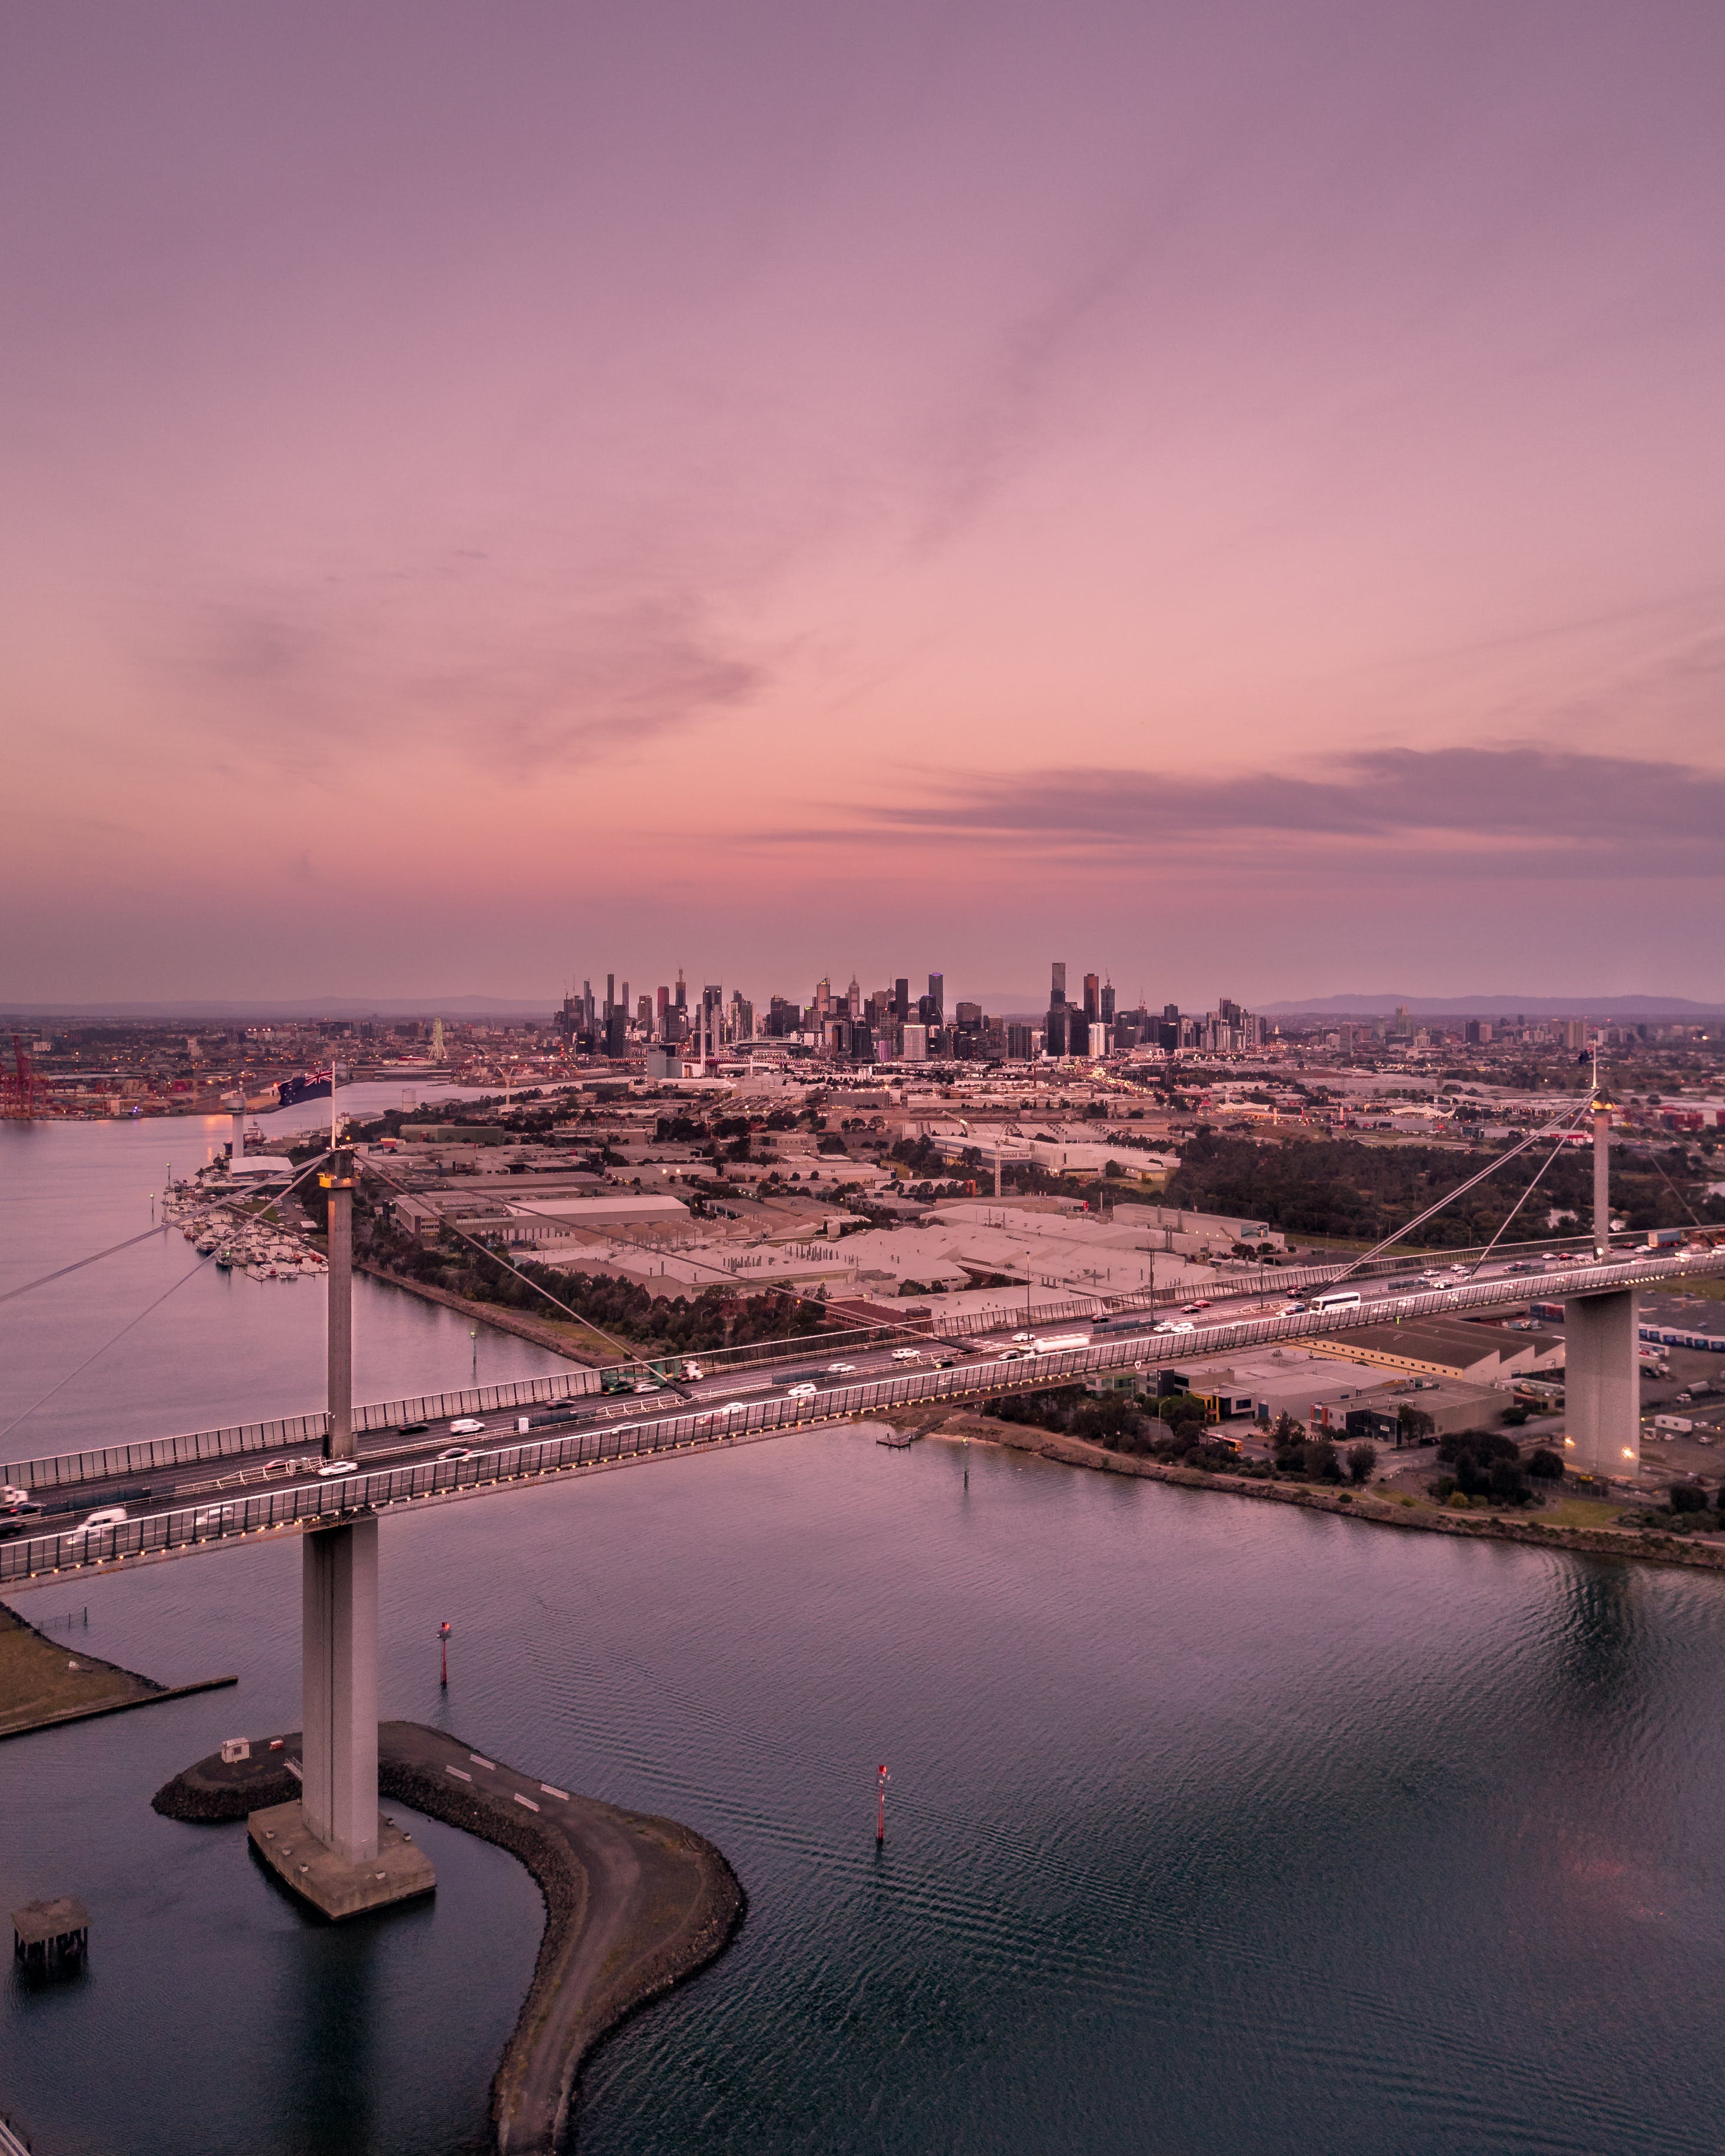 Aerial Photography of City Buildings and Bridge